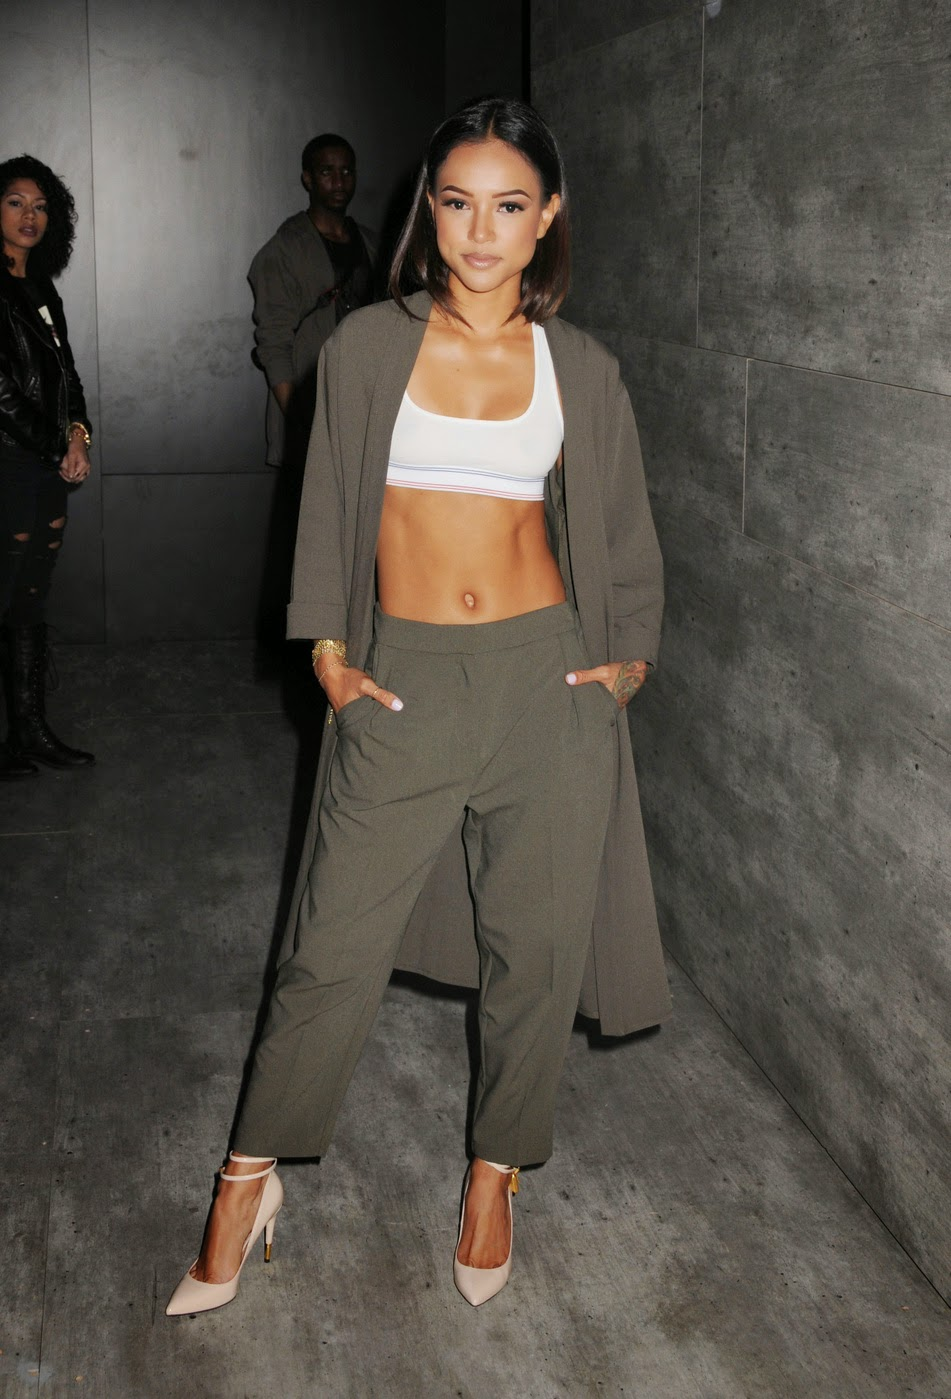 Karrueche Tran Shows Off Her Midriff